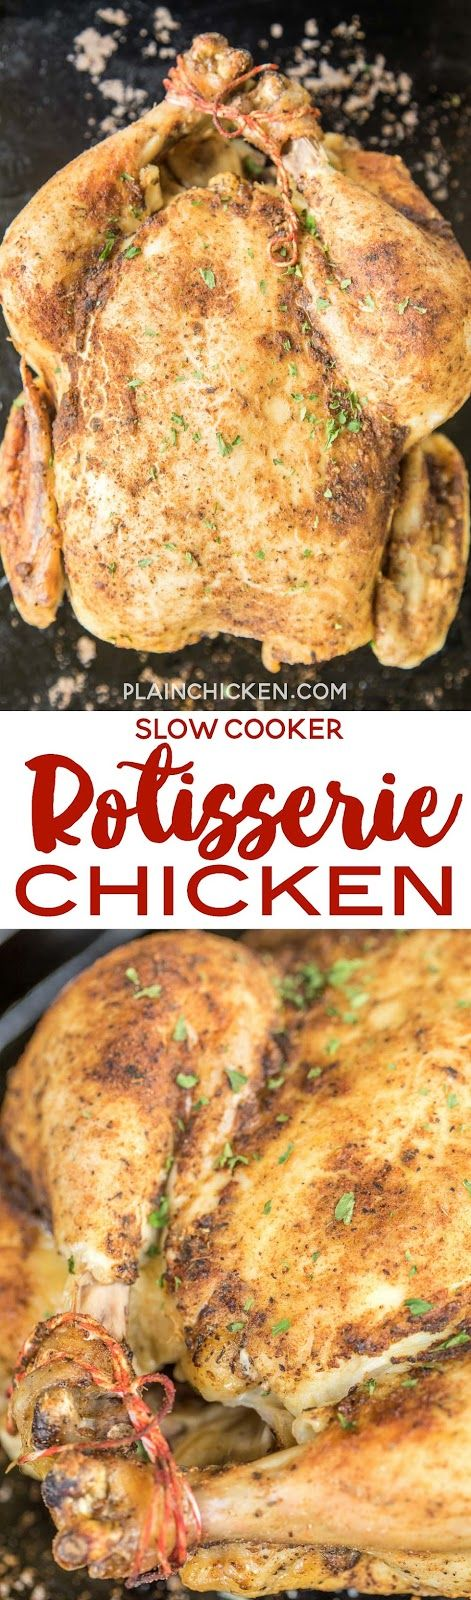 Slow Cooker Rotisserie Chicken - tastes better than store-bought chickens! SO easy. Rub spices on the chicken and pop in the slow cooker. Put cooked chicken under the broiler for a bit to crisp up the skin. Great for dinner or shred chicken and freeze to use in casseroles later. Everyone LOVED this easy slow cooker chicken recipe!